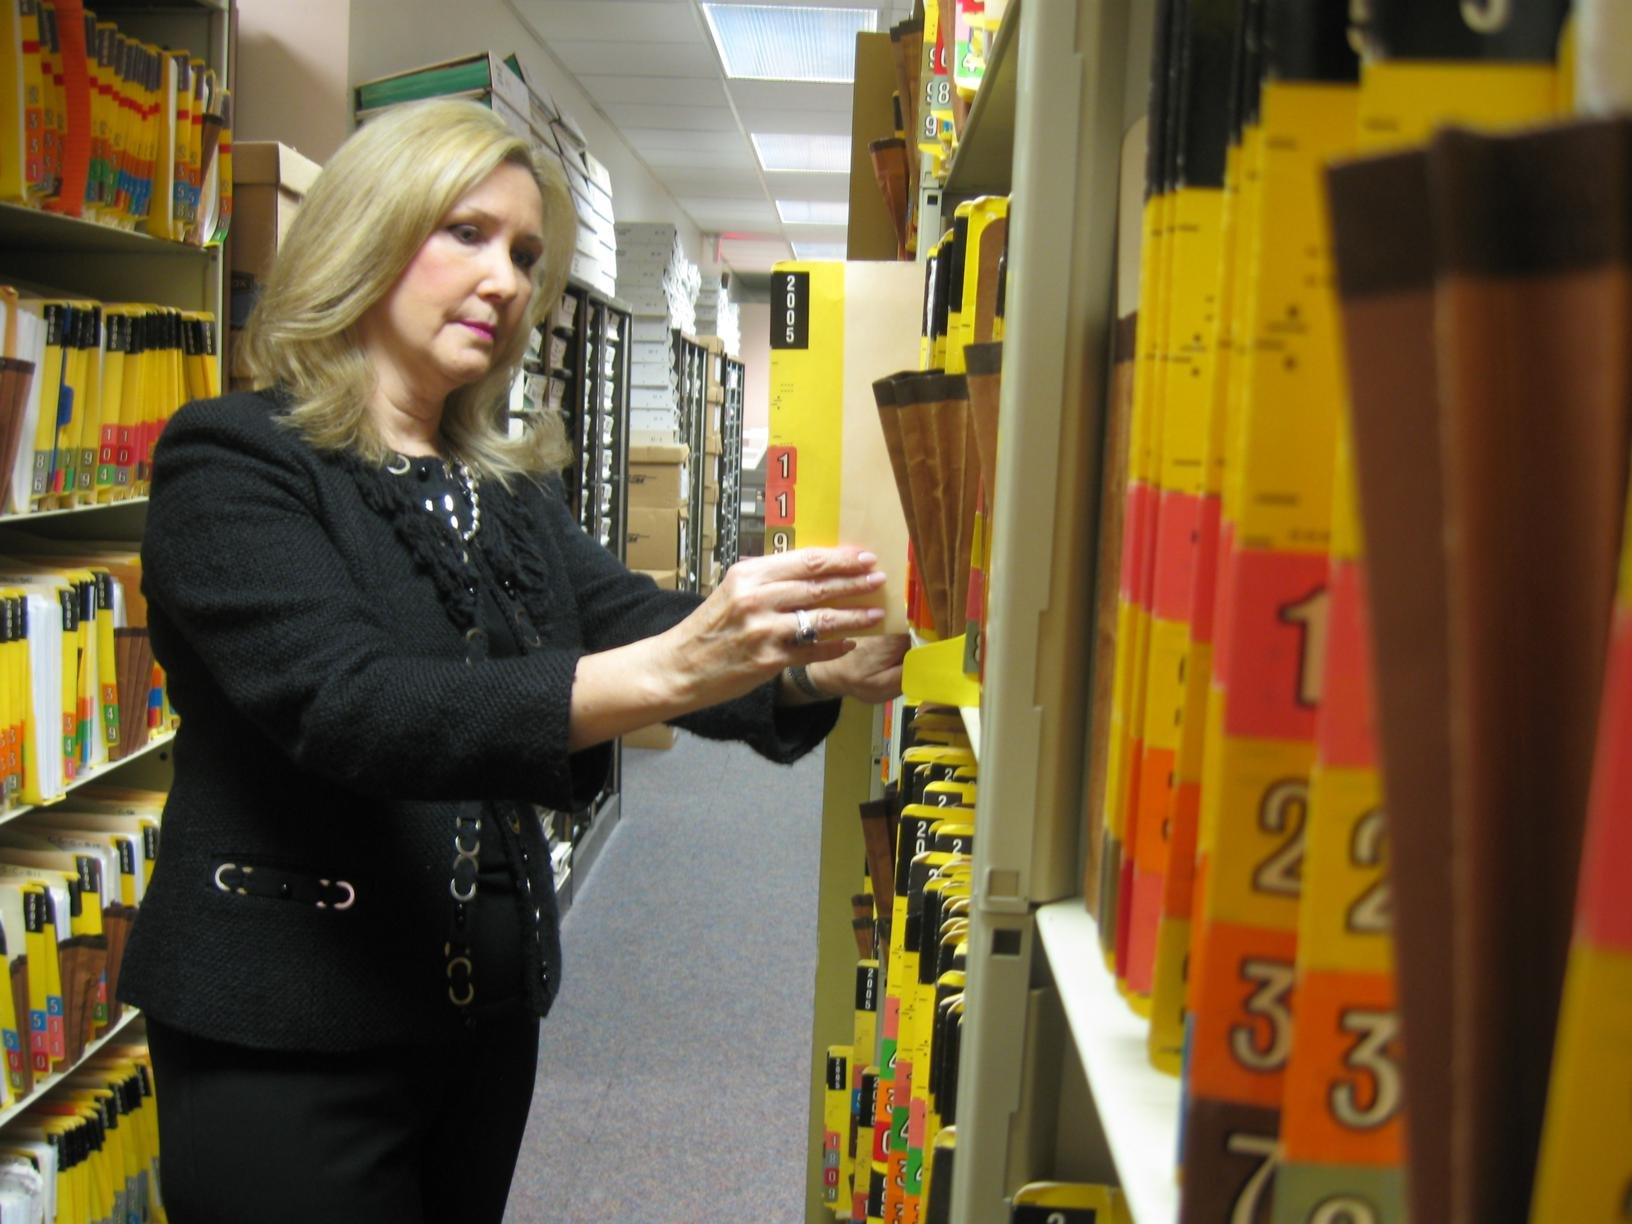 Kanawha County circuit clerk Cathy Gatson said the courthouse is quickly running out of space for record storage.